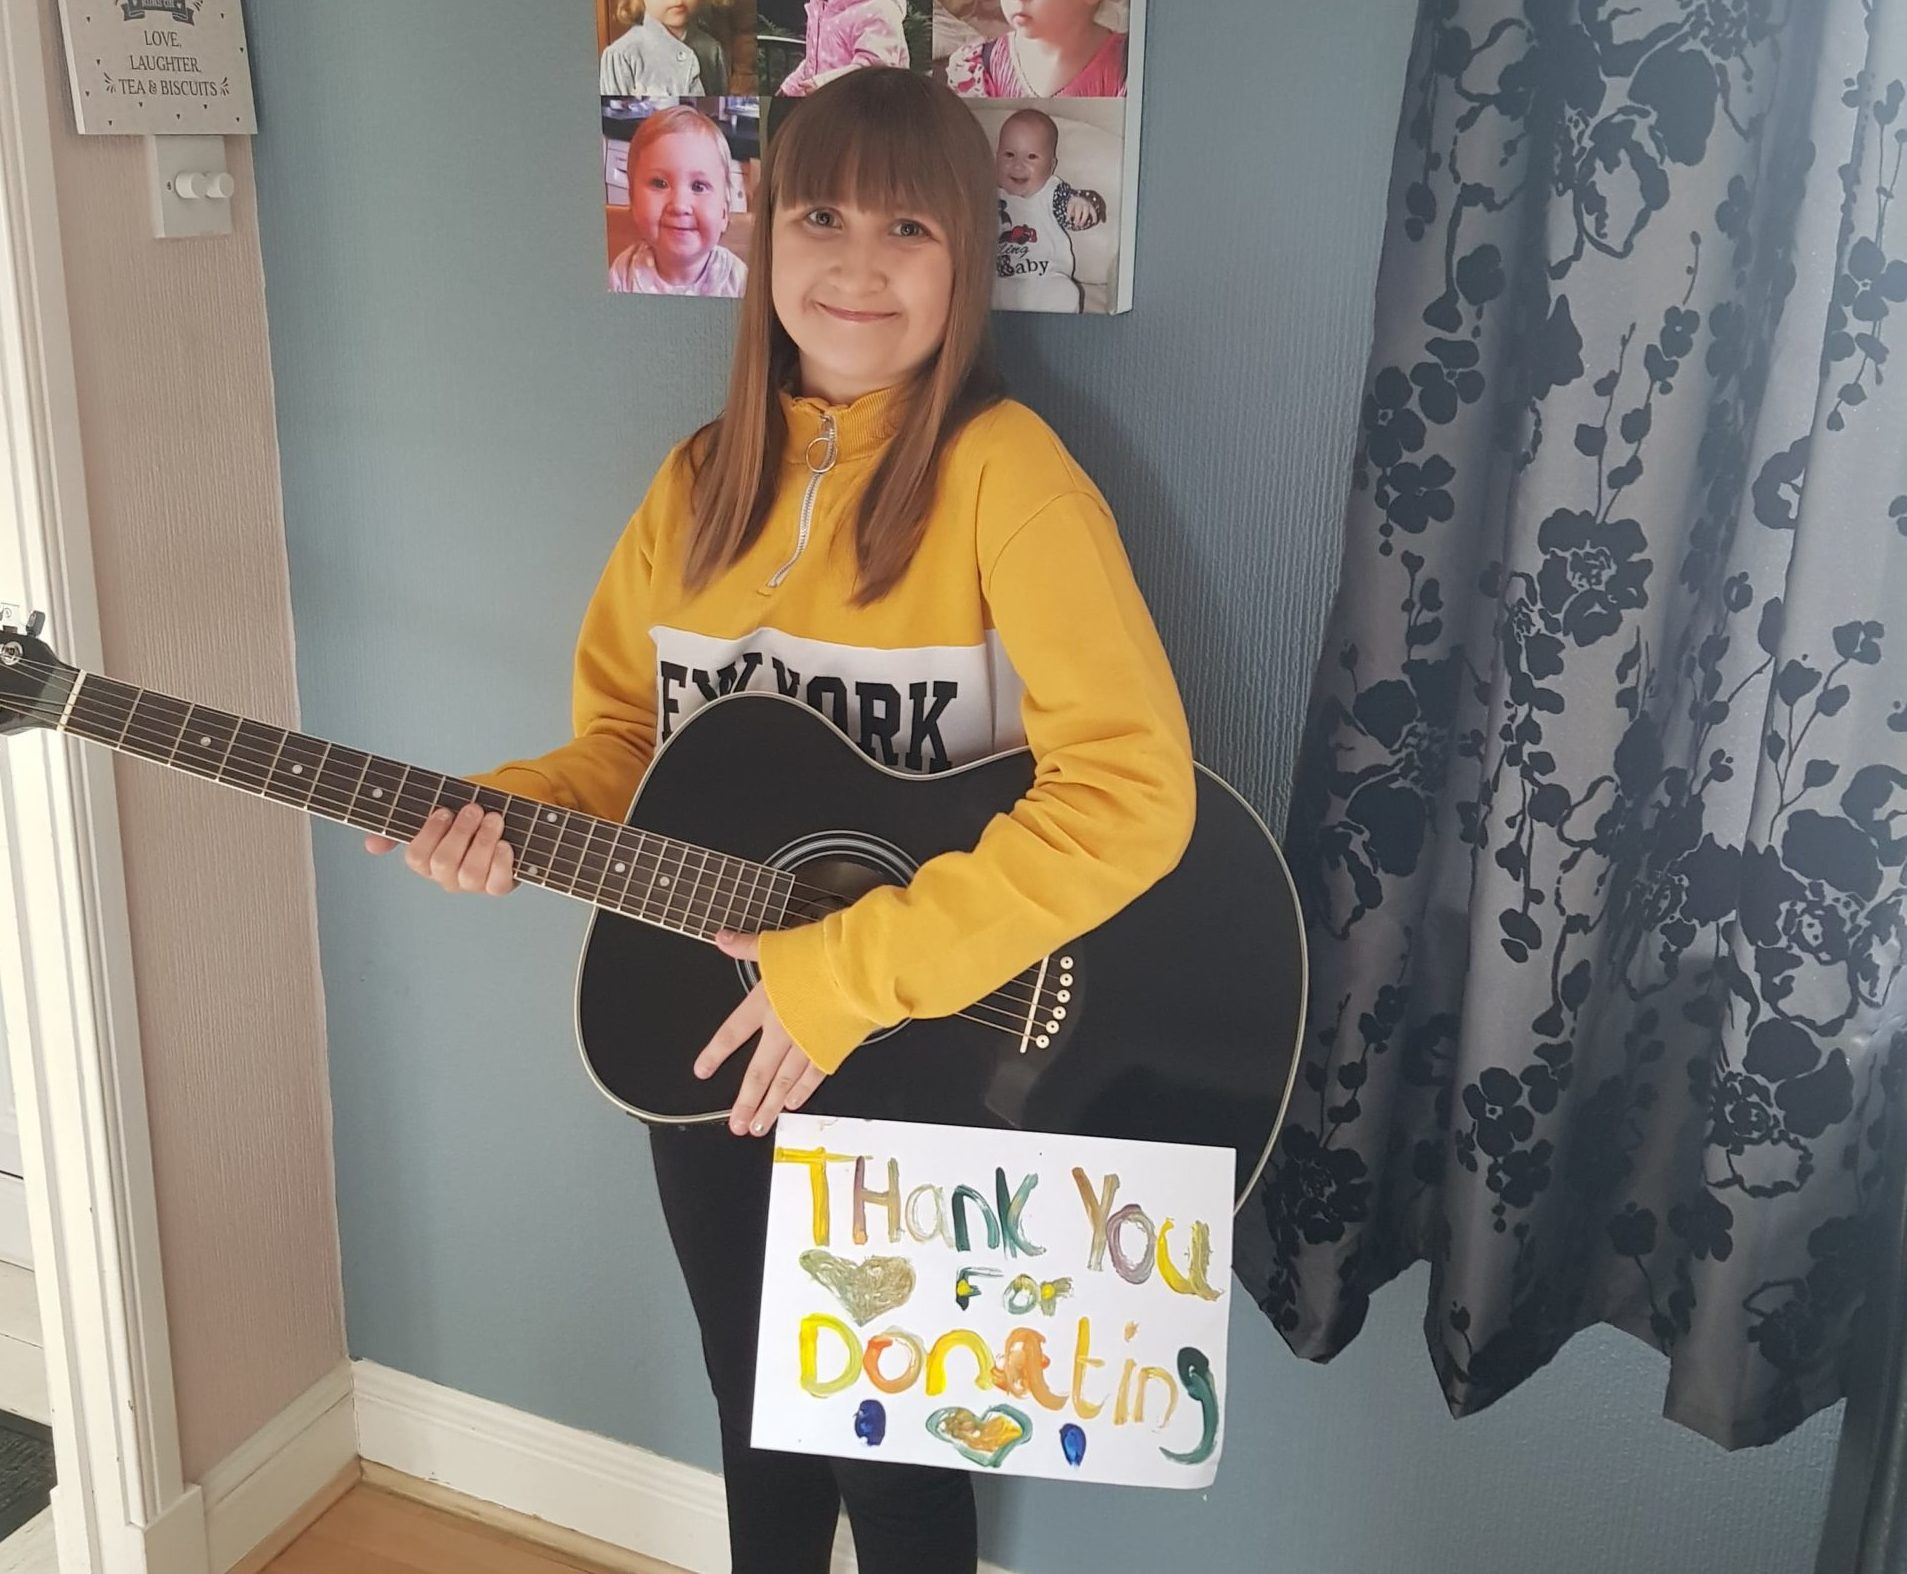 Hayley Fraser is strumming her guitar in aid of NHS frontline workers